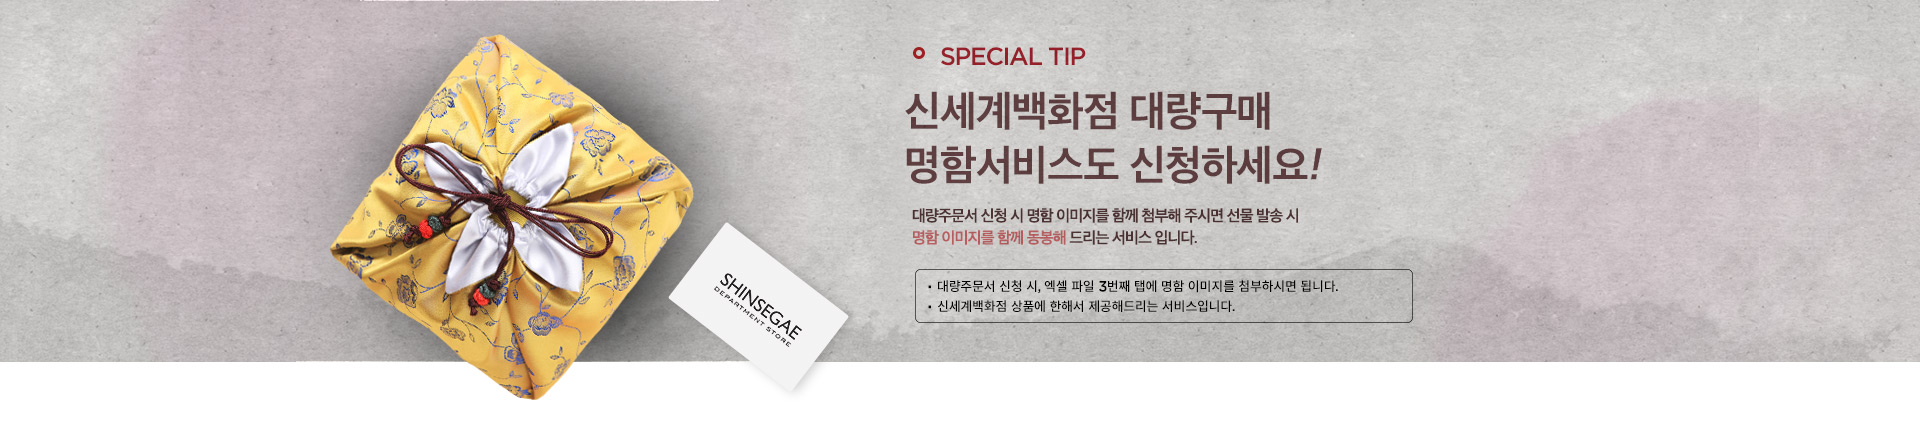 Special Tip